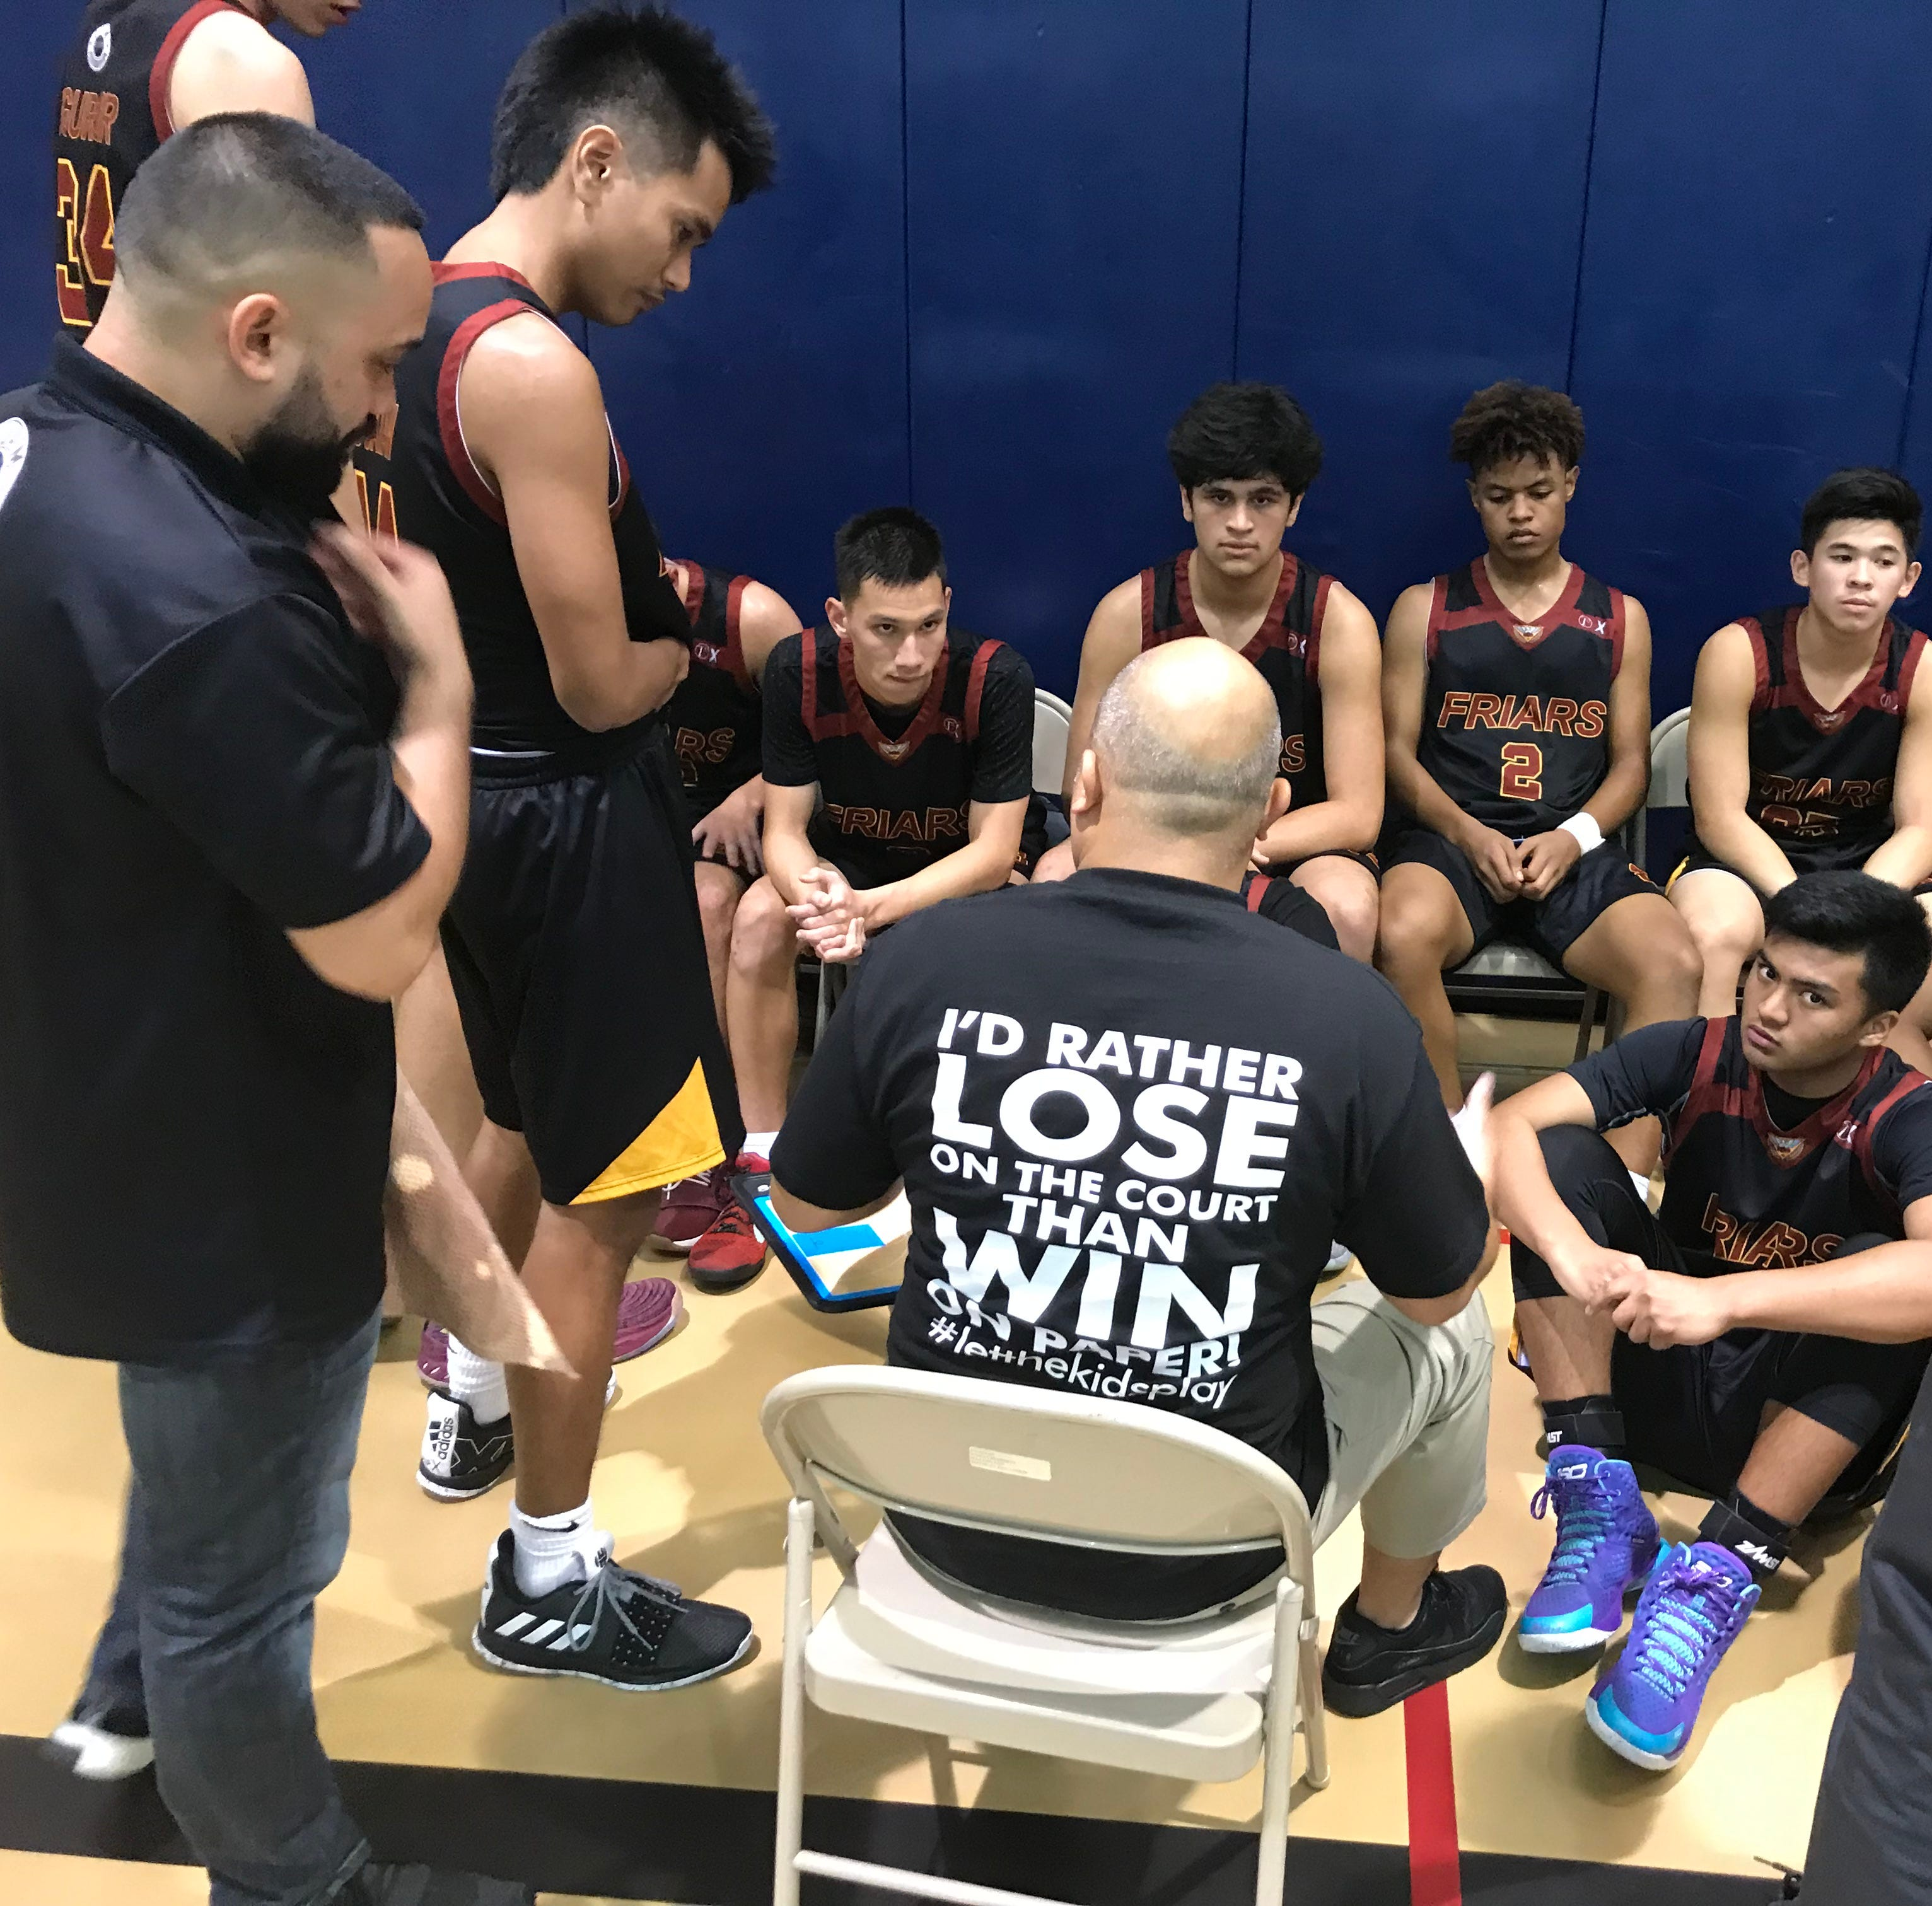 Friars rout Panthers, finish atop Gadao Division